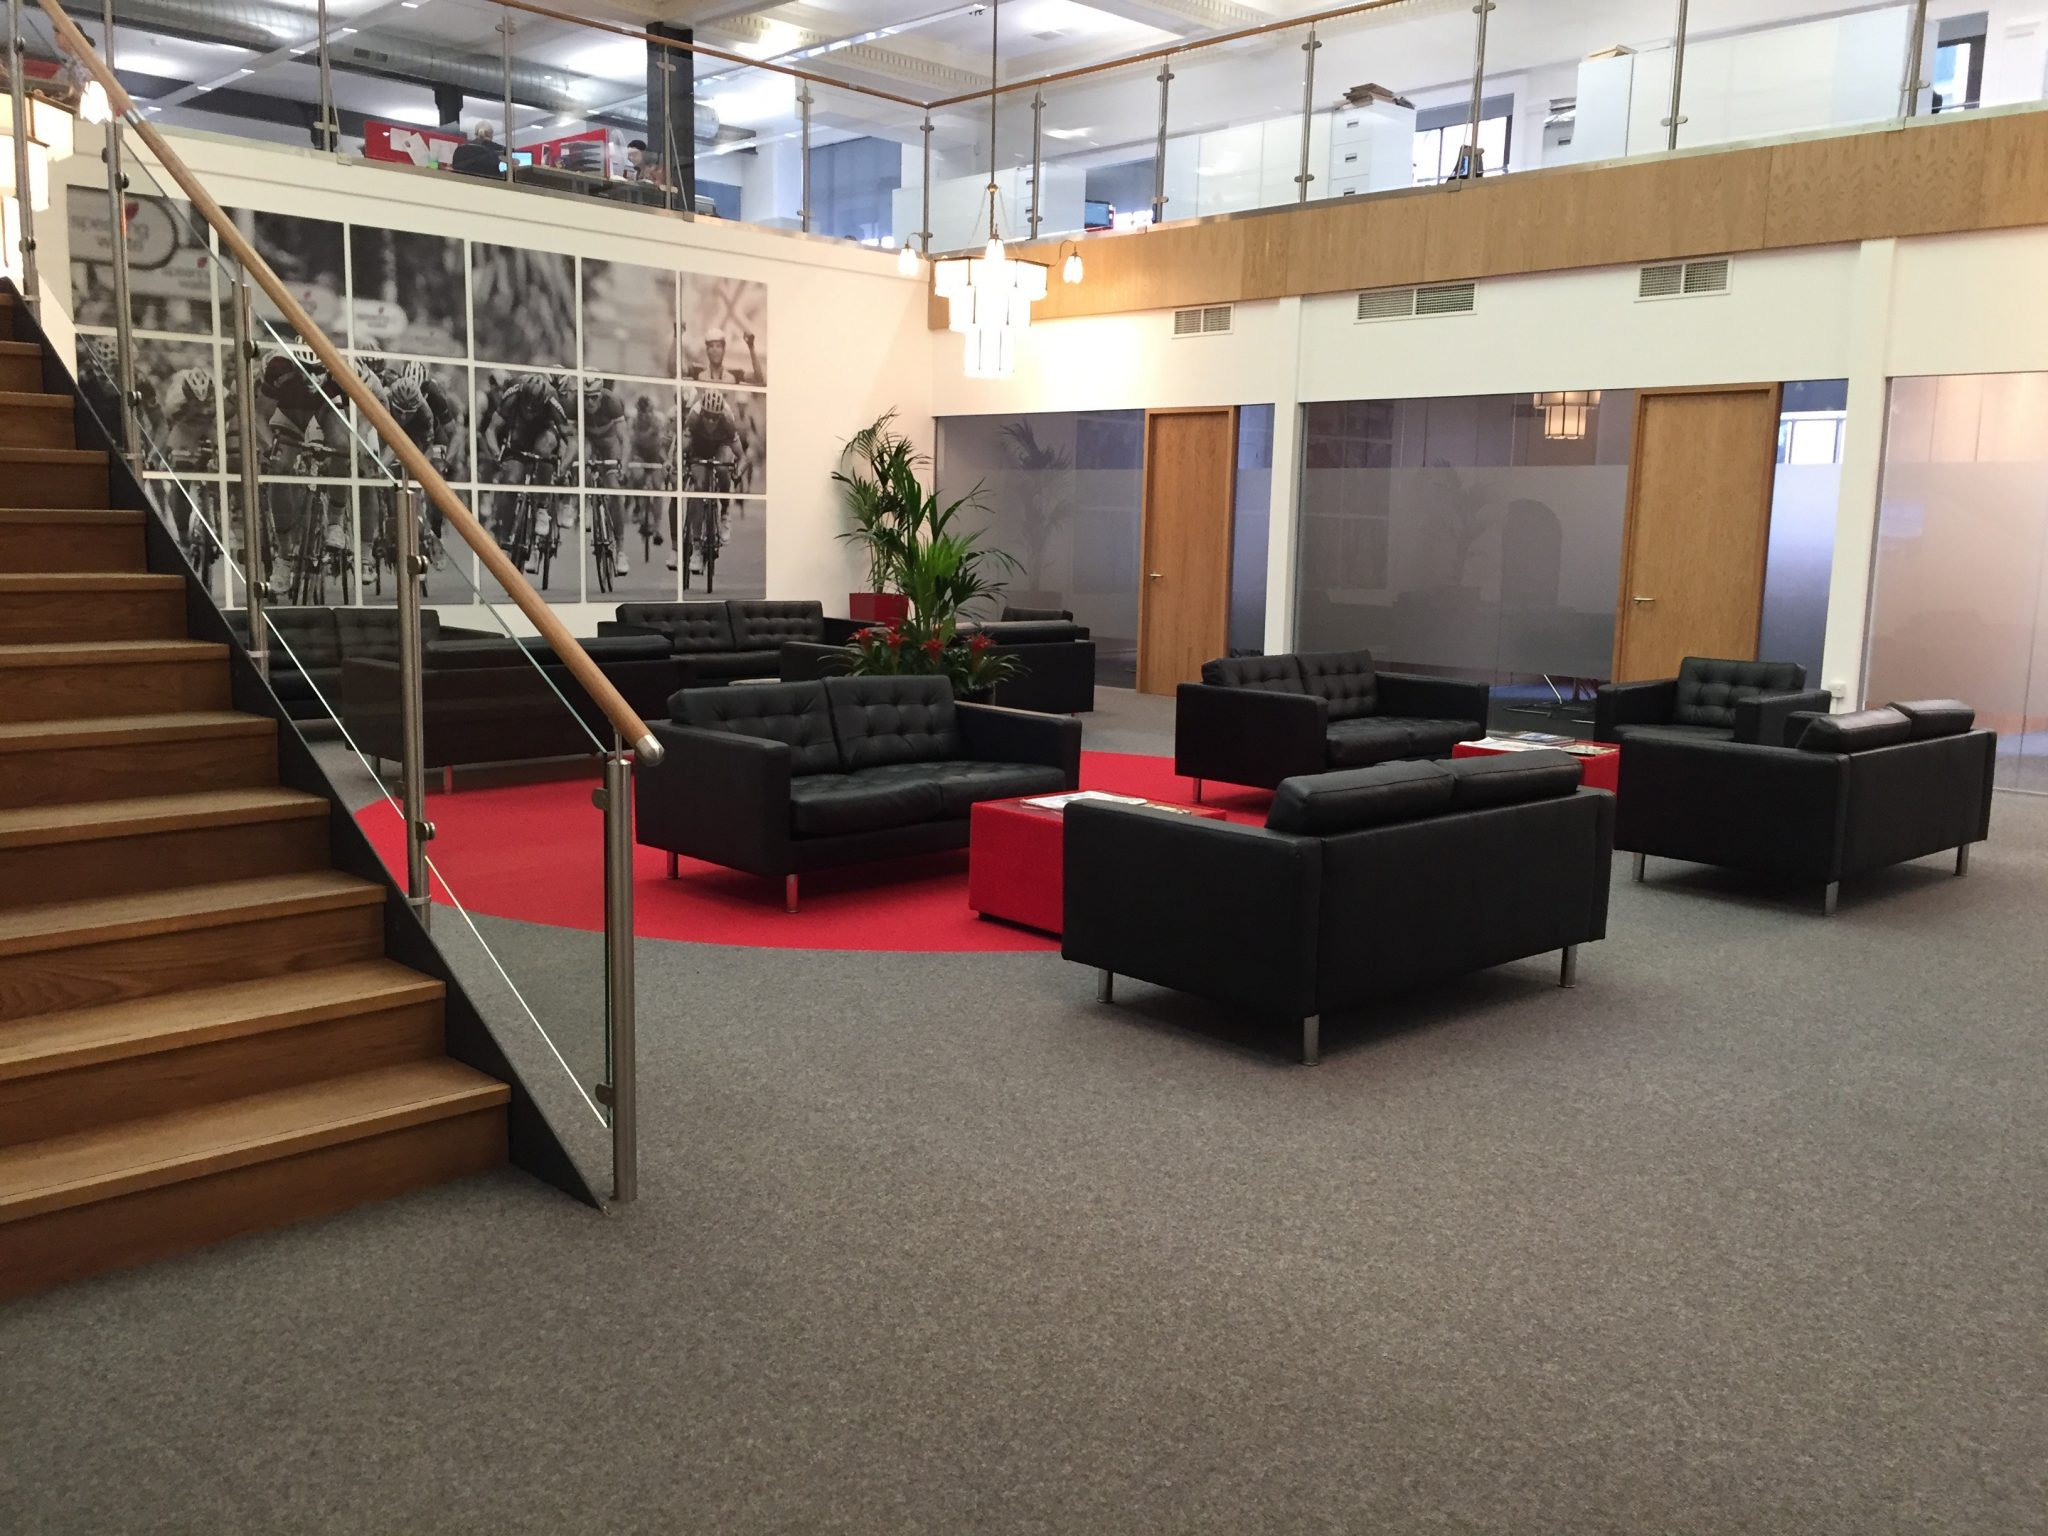 Commercial Flooring in Leicestershire - Spearing Waite Law Firm